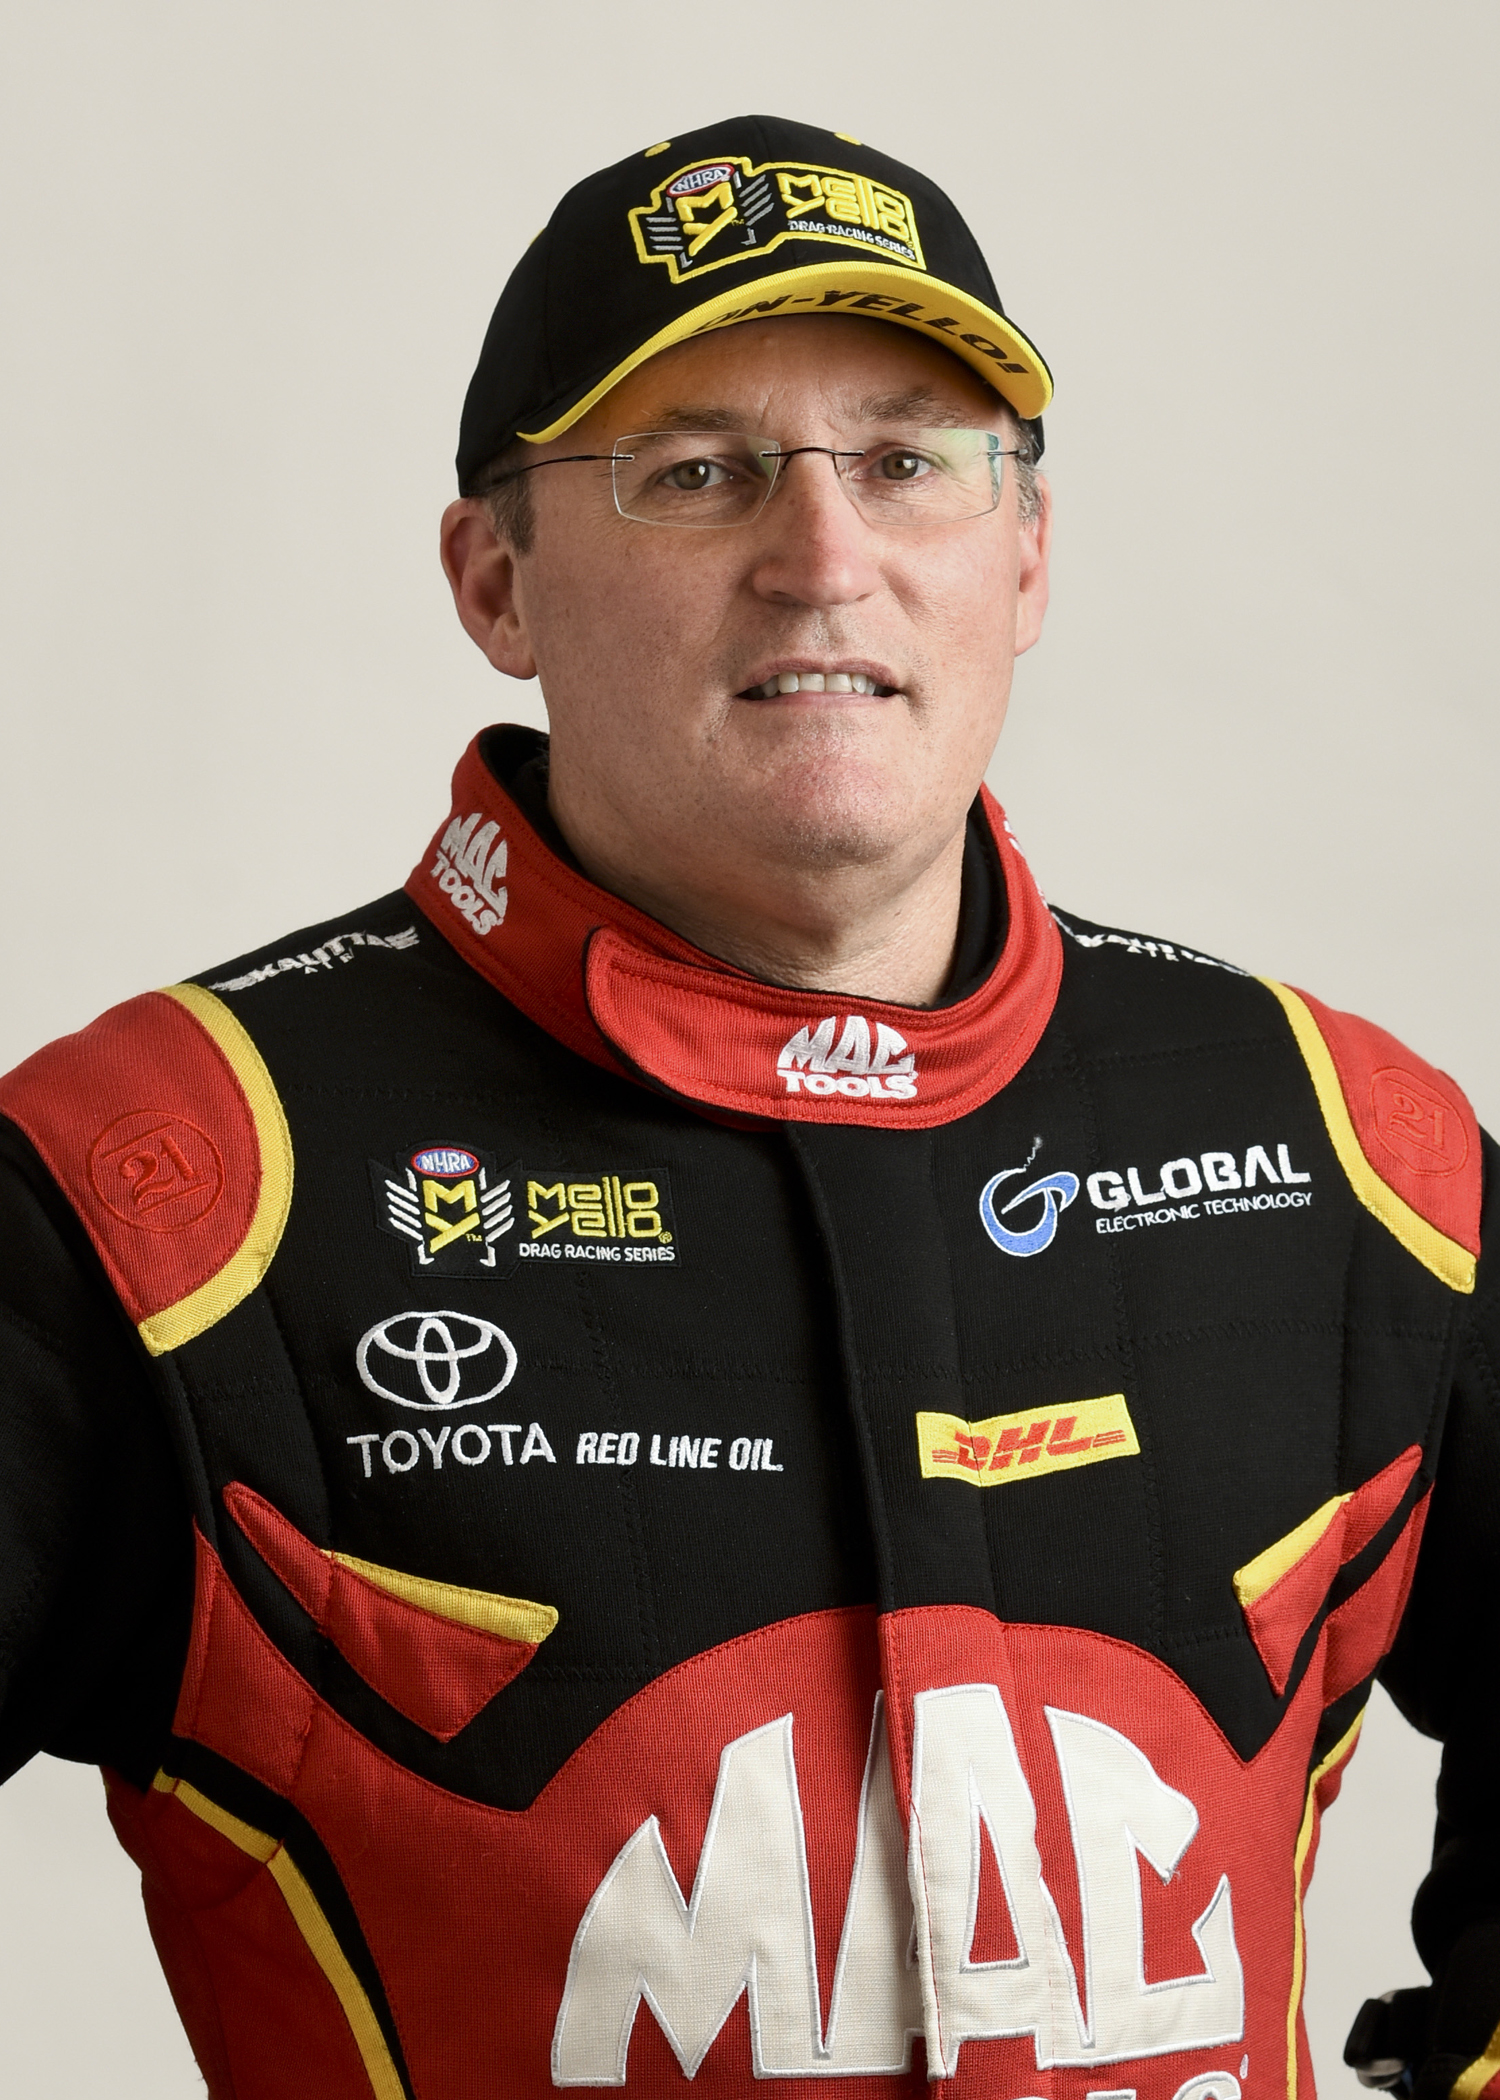 NHRA - Top Fuel - Doug Kalitta